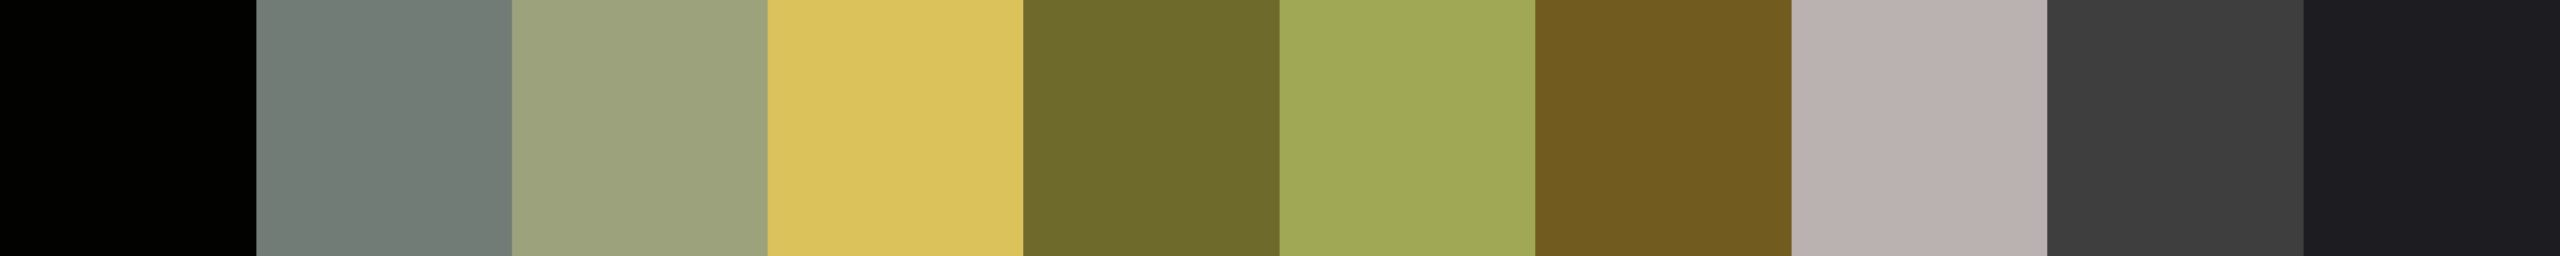 304 Mpolokia Color Palette